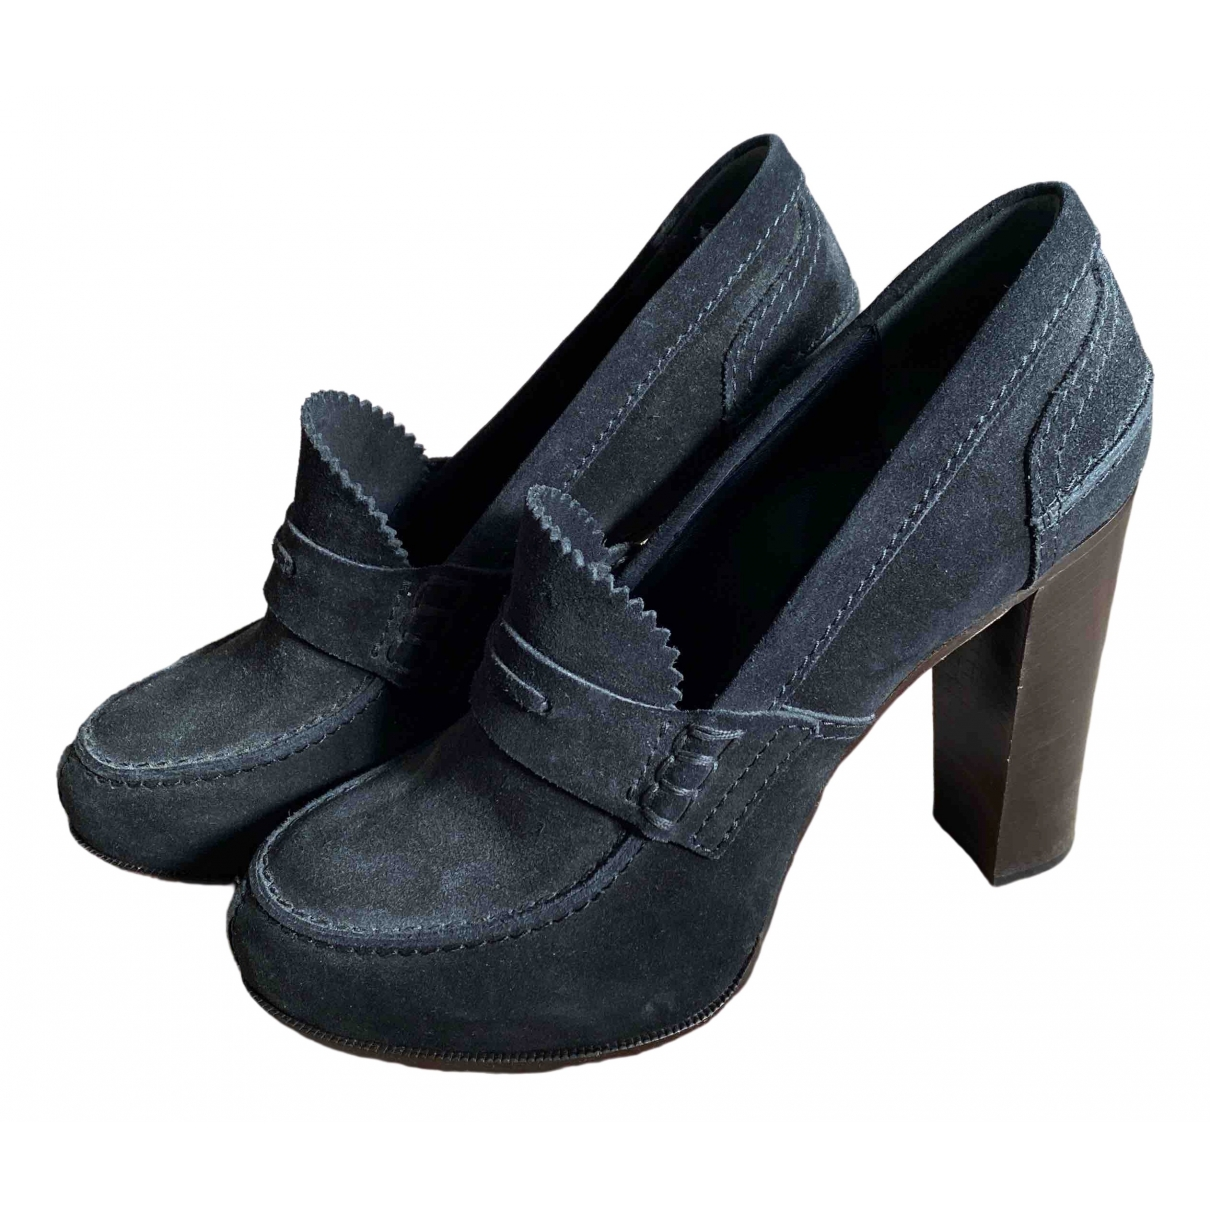 Celine \N Black Suede Heels for Women 39 EU